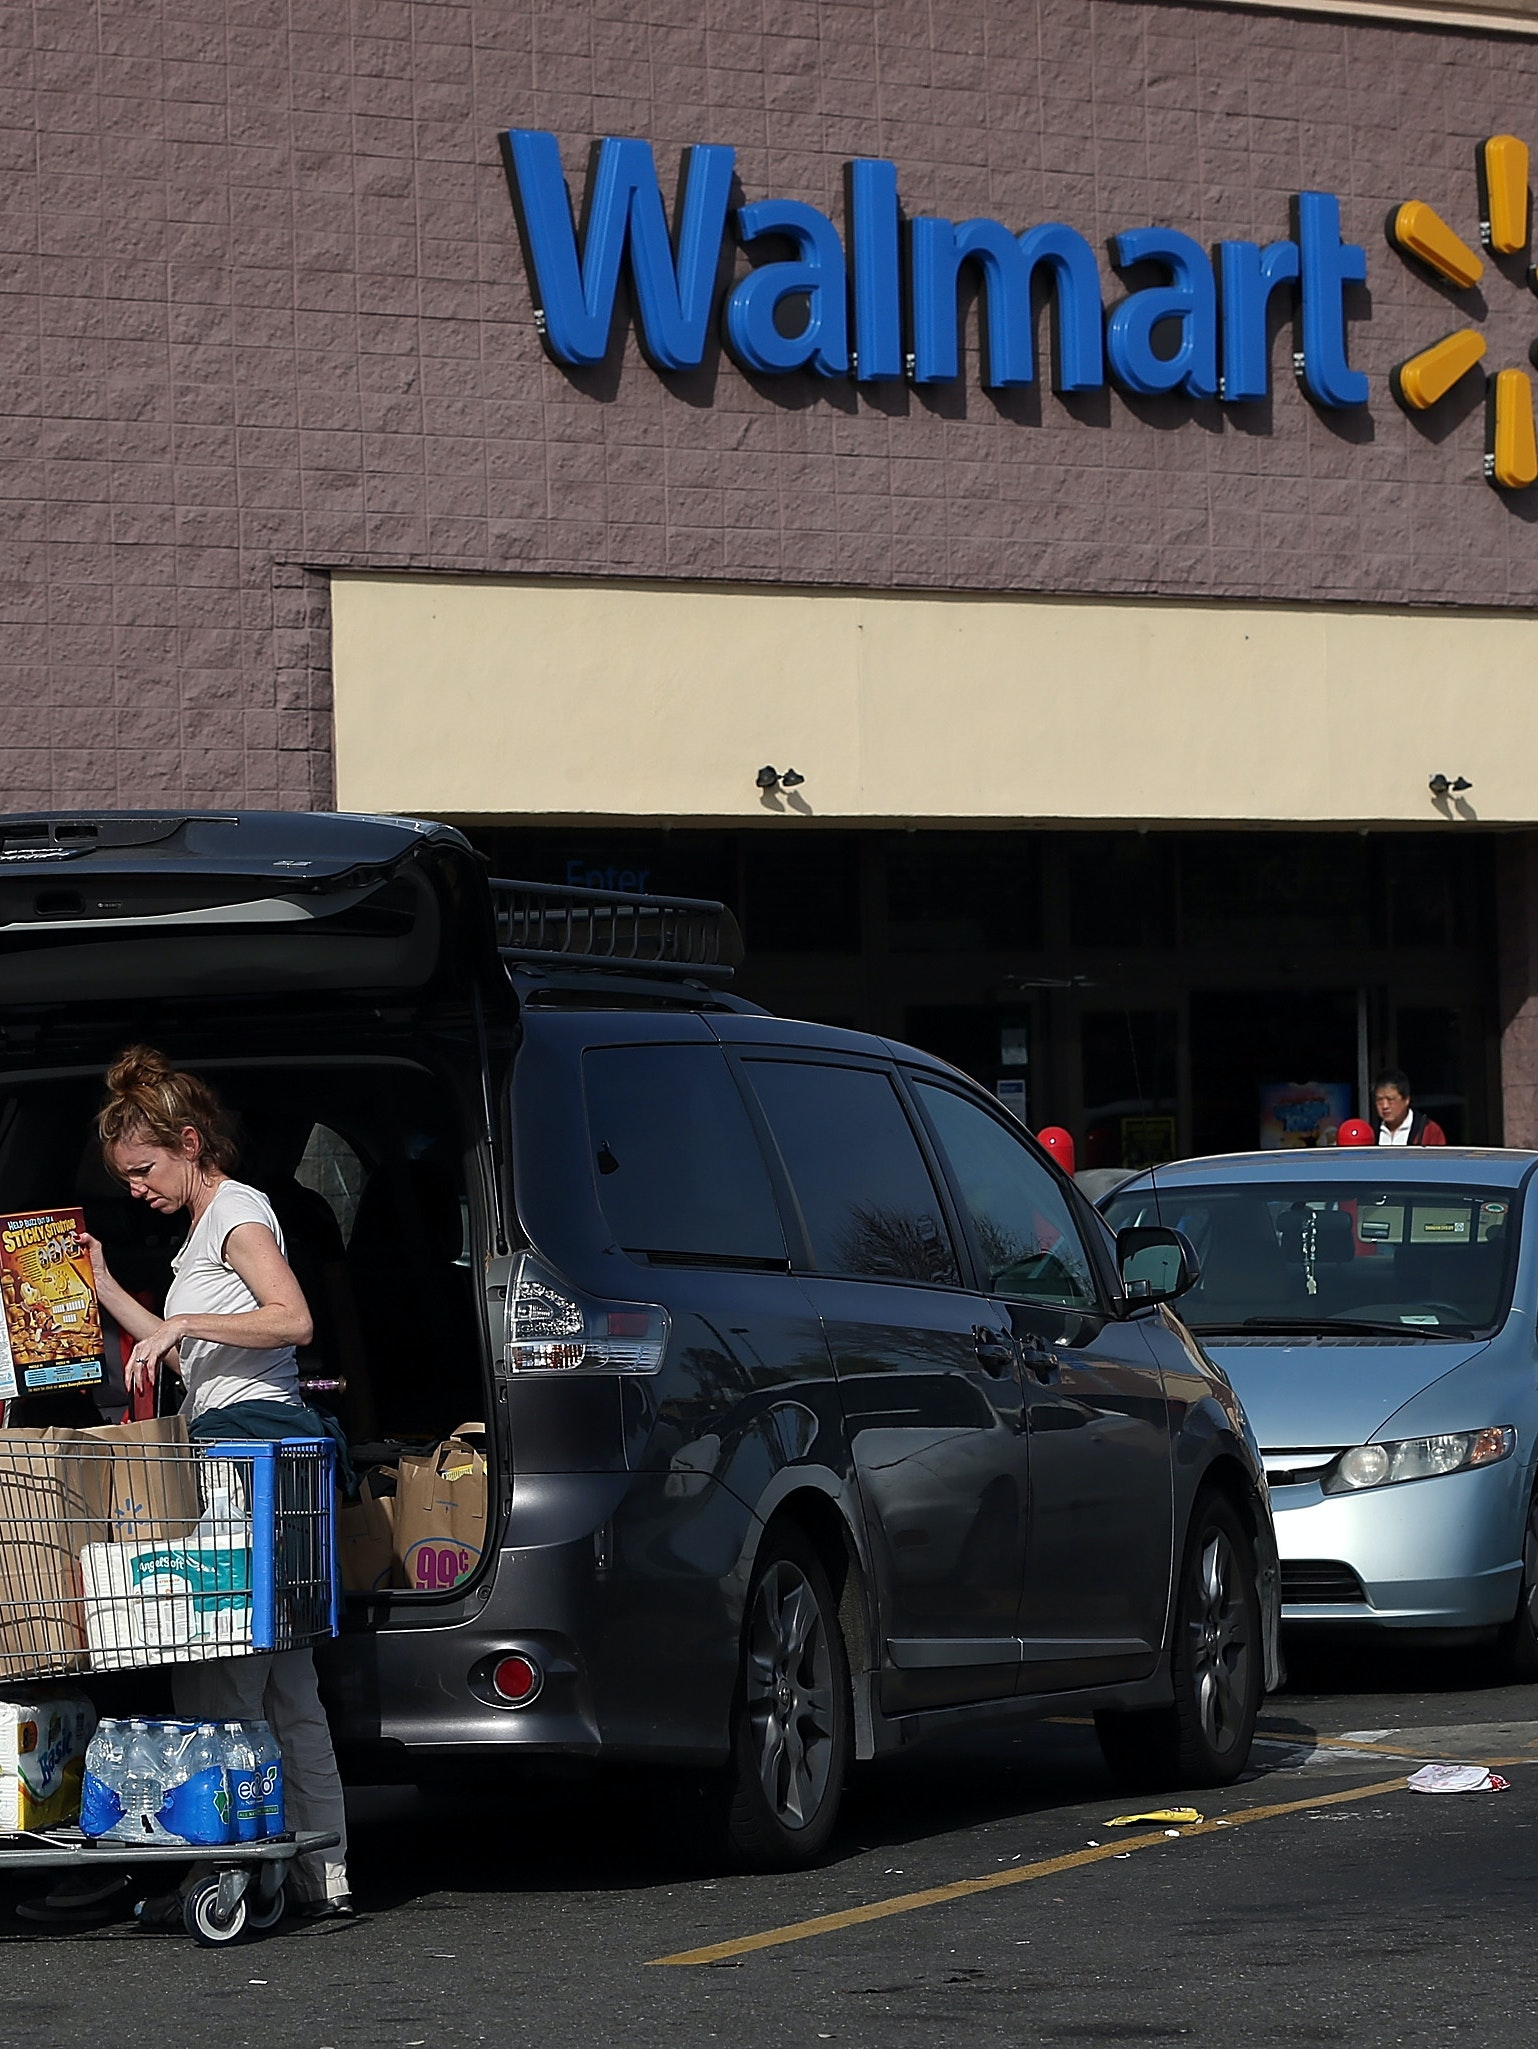 SAN LORENZO, CA - FEBRUARY 20:  A Wal-Mart customer loads groceries into her car outside of a Wal-Mart store on February 20, 2014 in San Lorenzo, California. Wal-Mart reporterd a 21 percent decline in fourth quarter earnings with profits of $4.4 billion or $1.36 a share compared to $5.6 billion, or $1.67 per share one year ago. (Photo by Justin Sullivan/Getty Images)